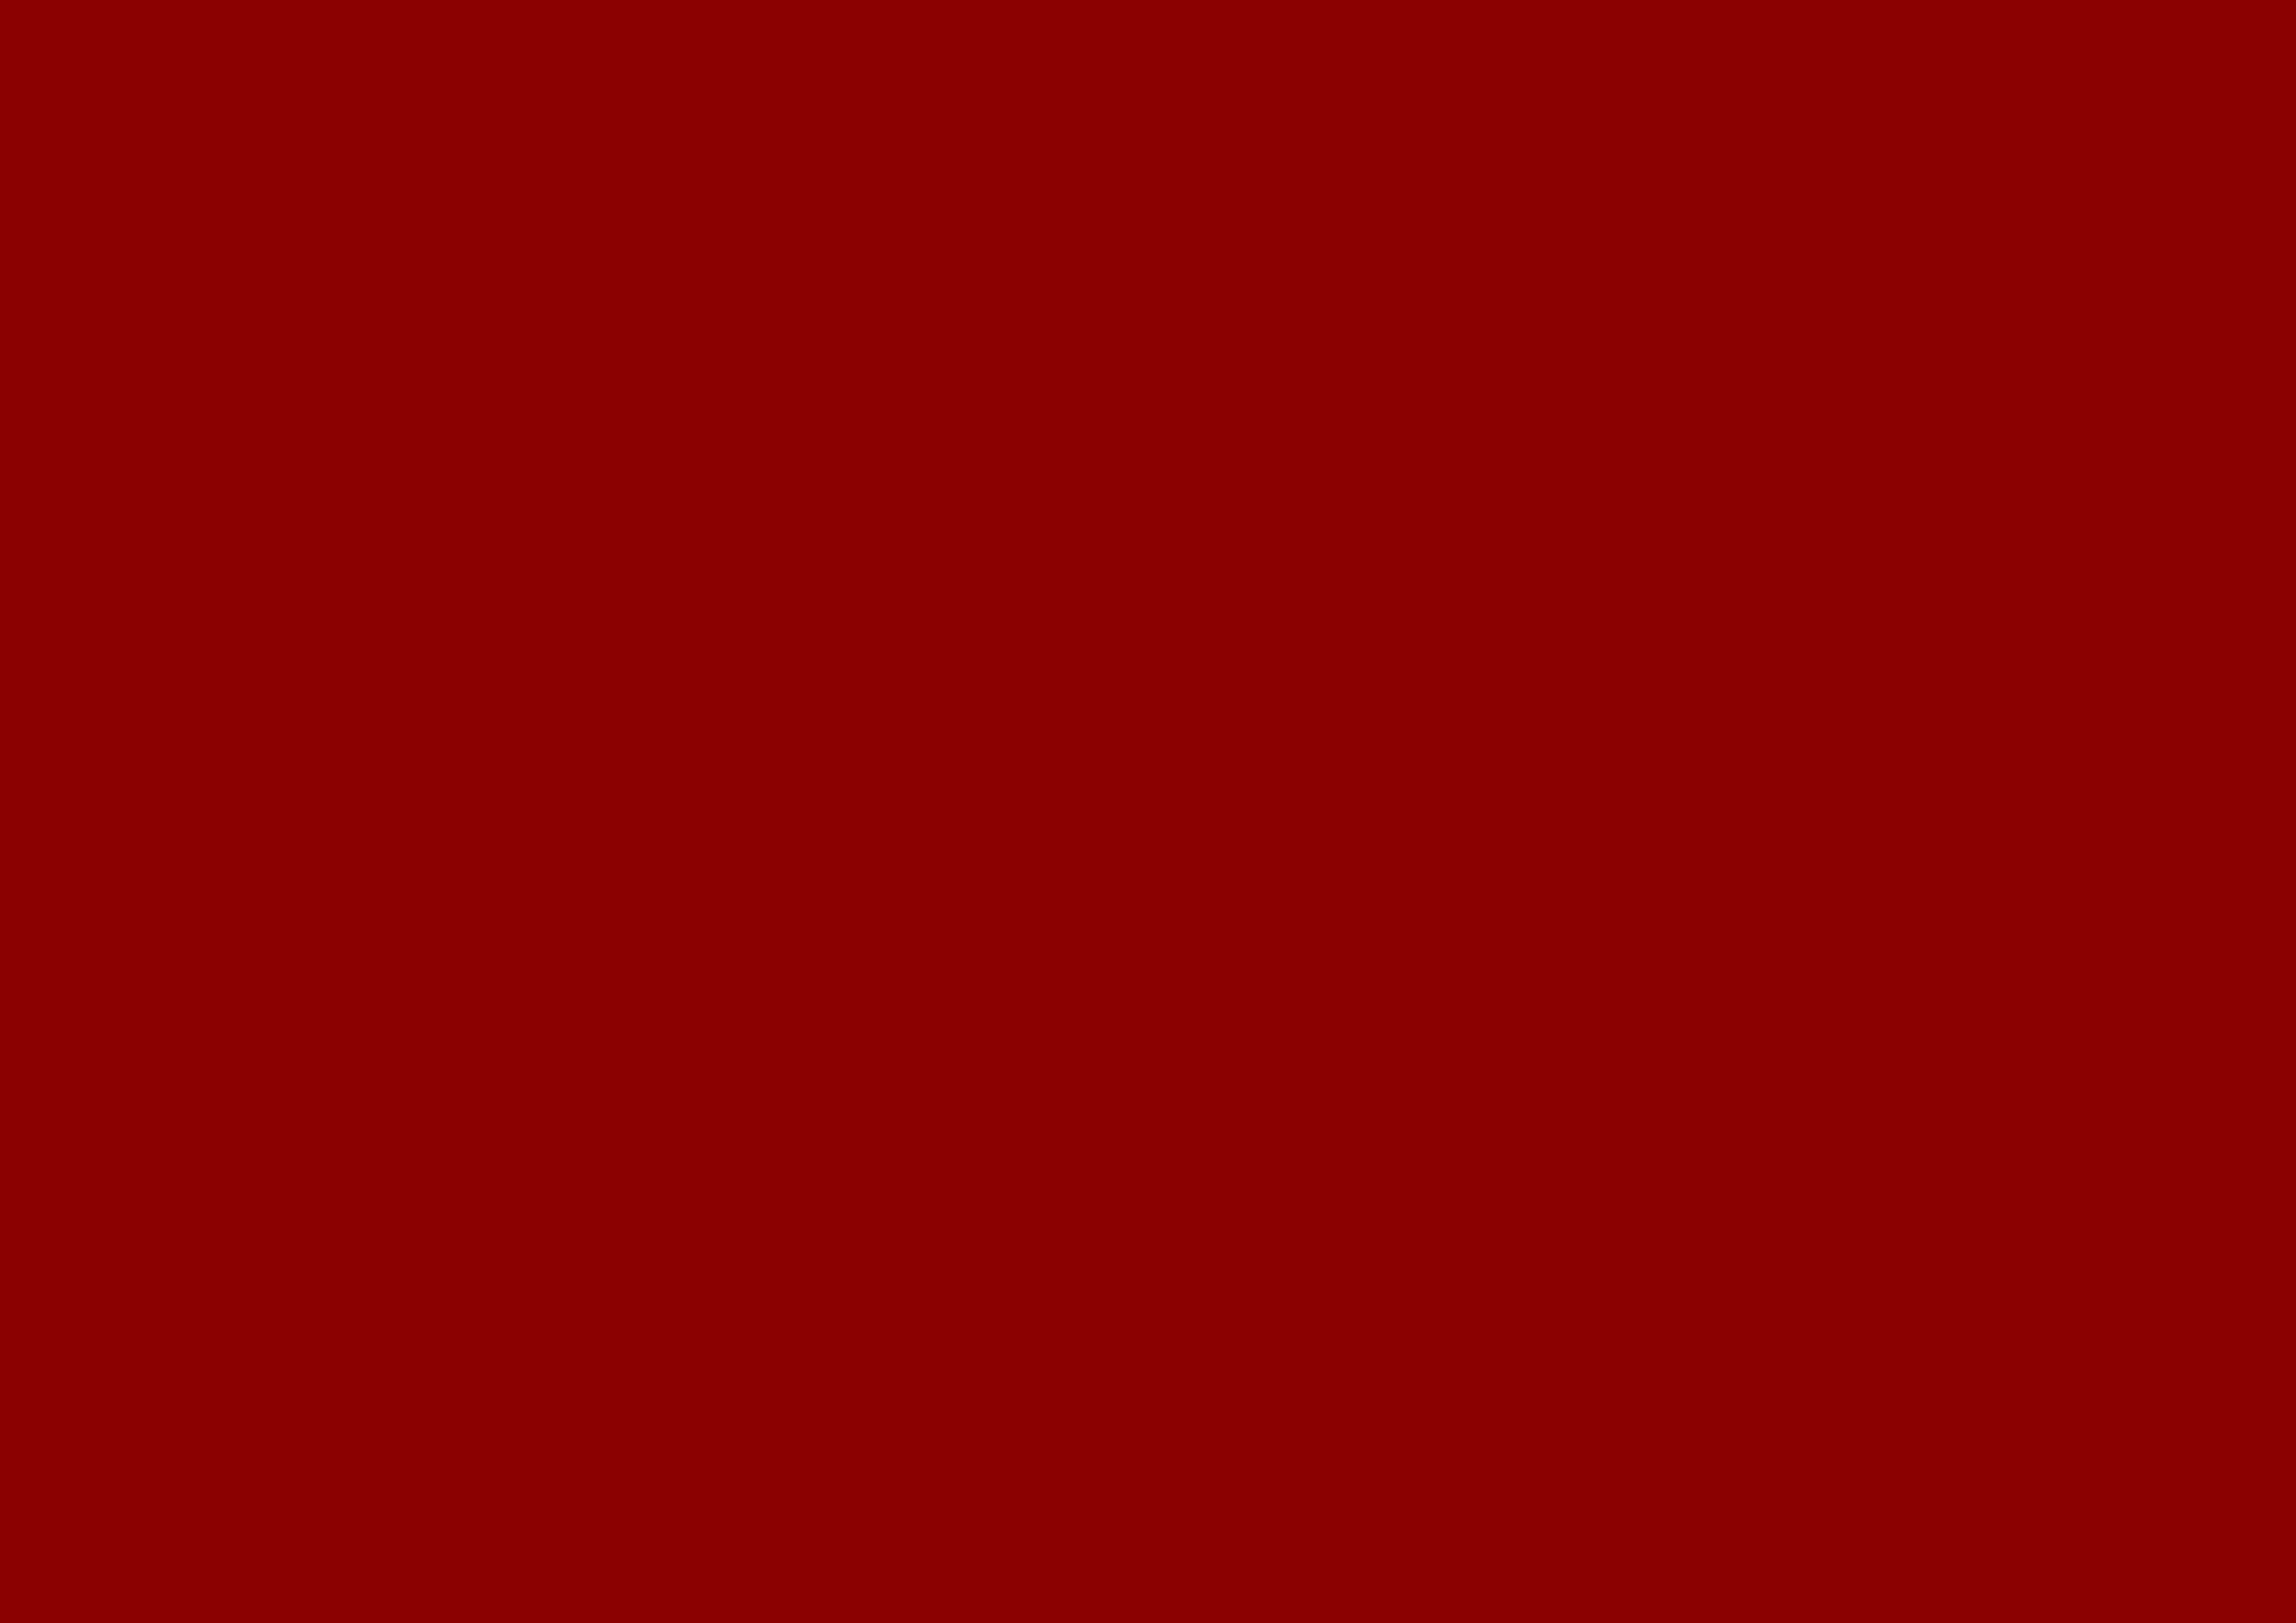 3508x2480 Dark Red Solid Color Background